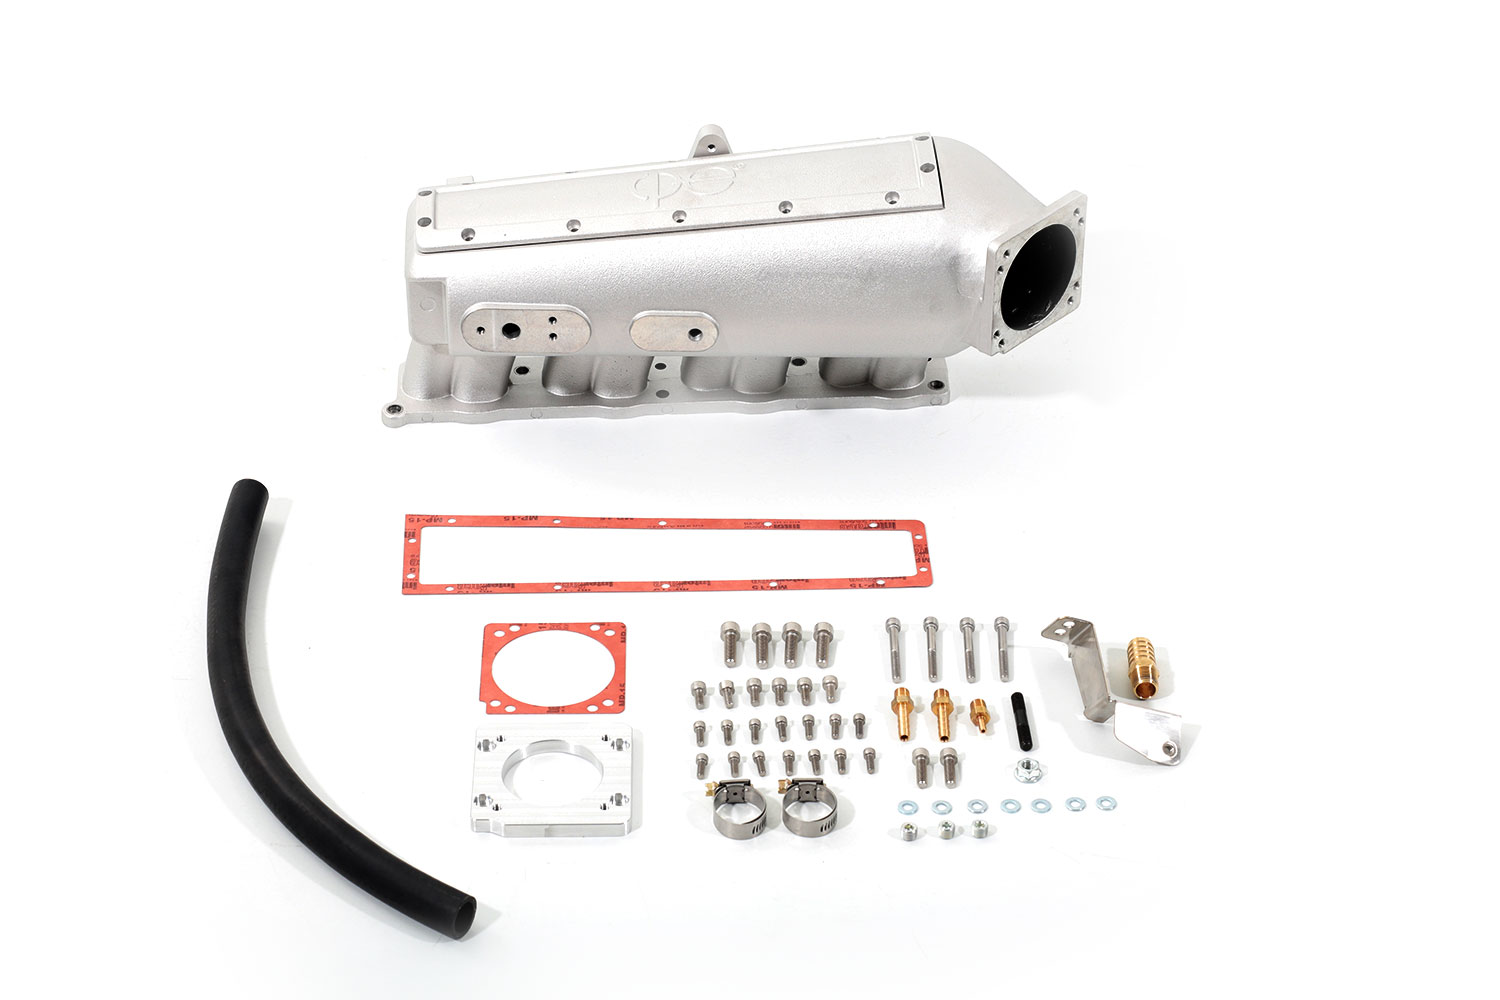 CPE Havoc™ Intake Manifold for Mazdaspeed 3 / 6